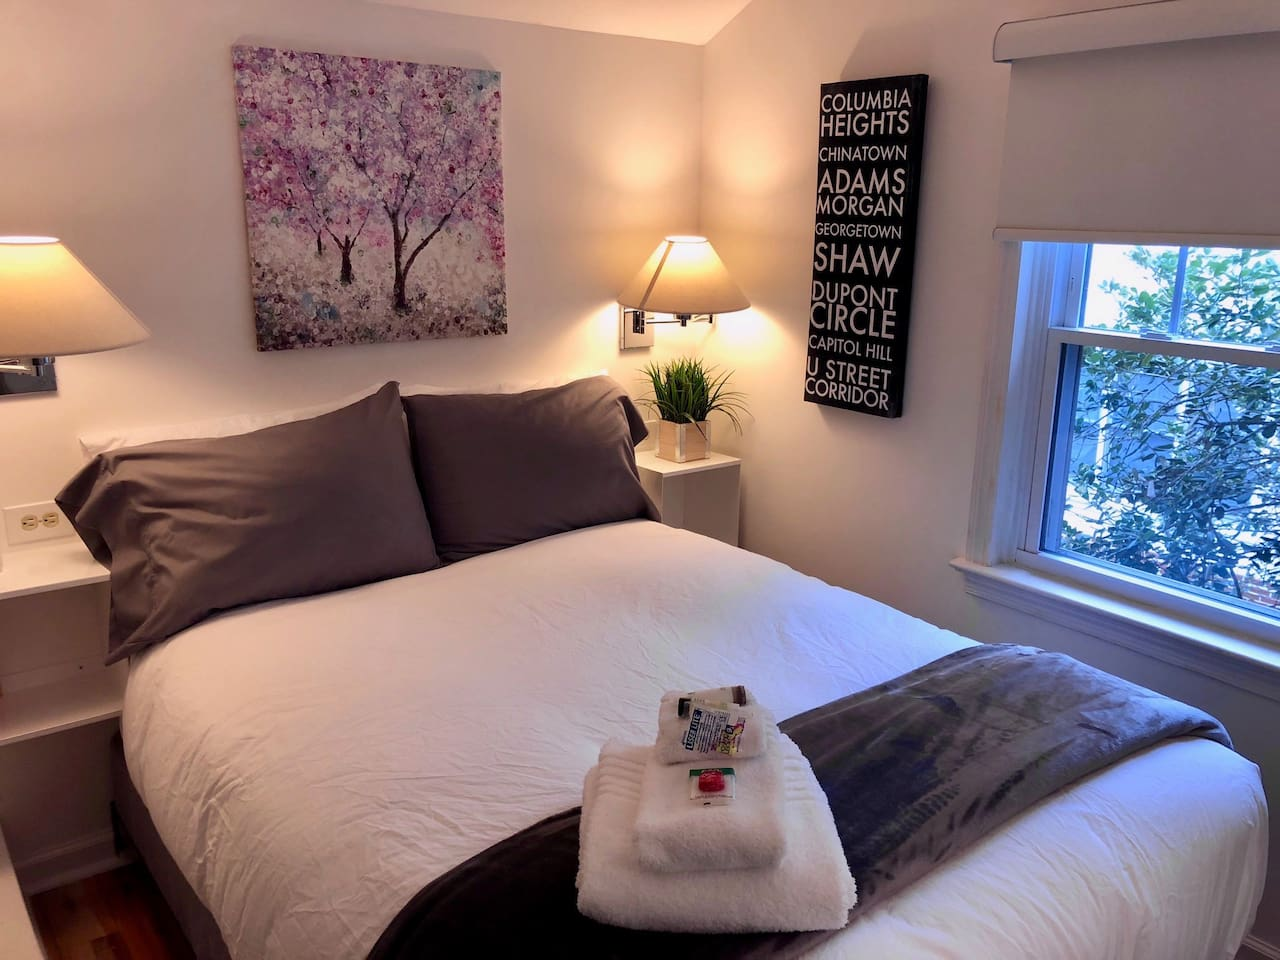 Private, fully renovated room with all the touches of home. Guests consistently comment on the super comfortable double bed.